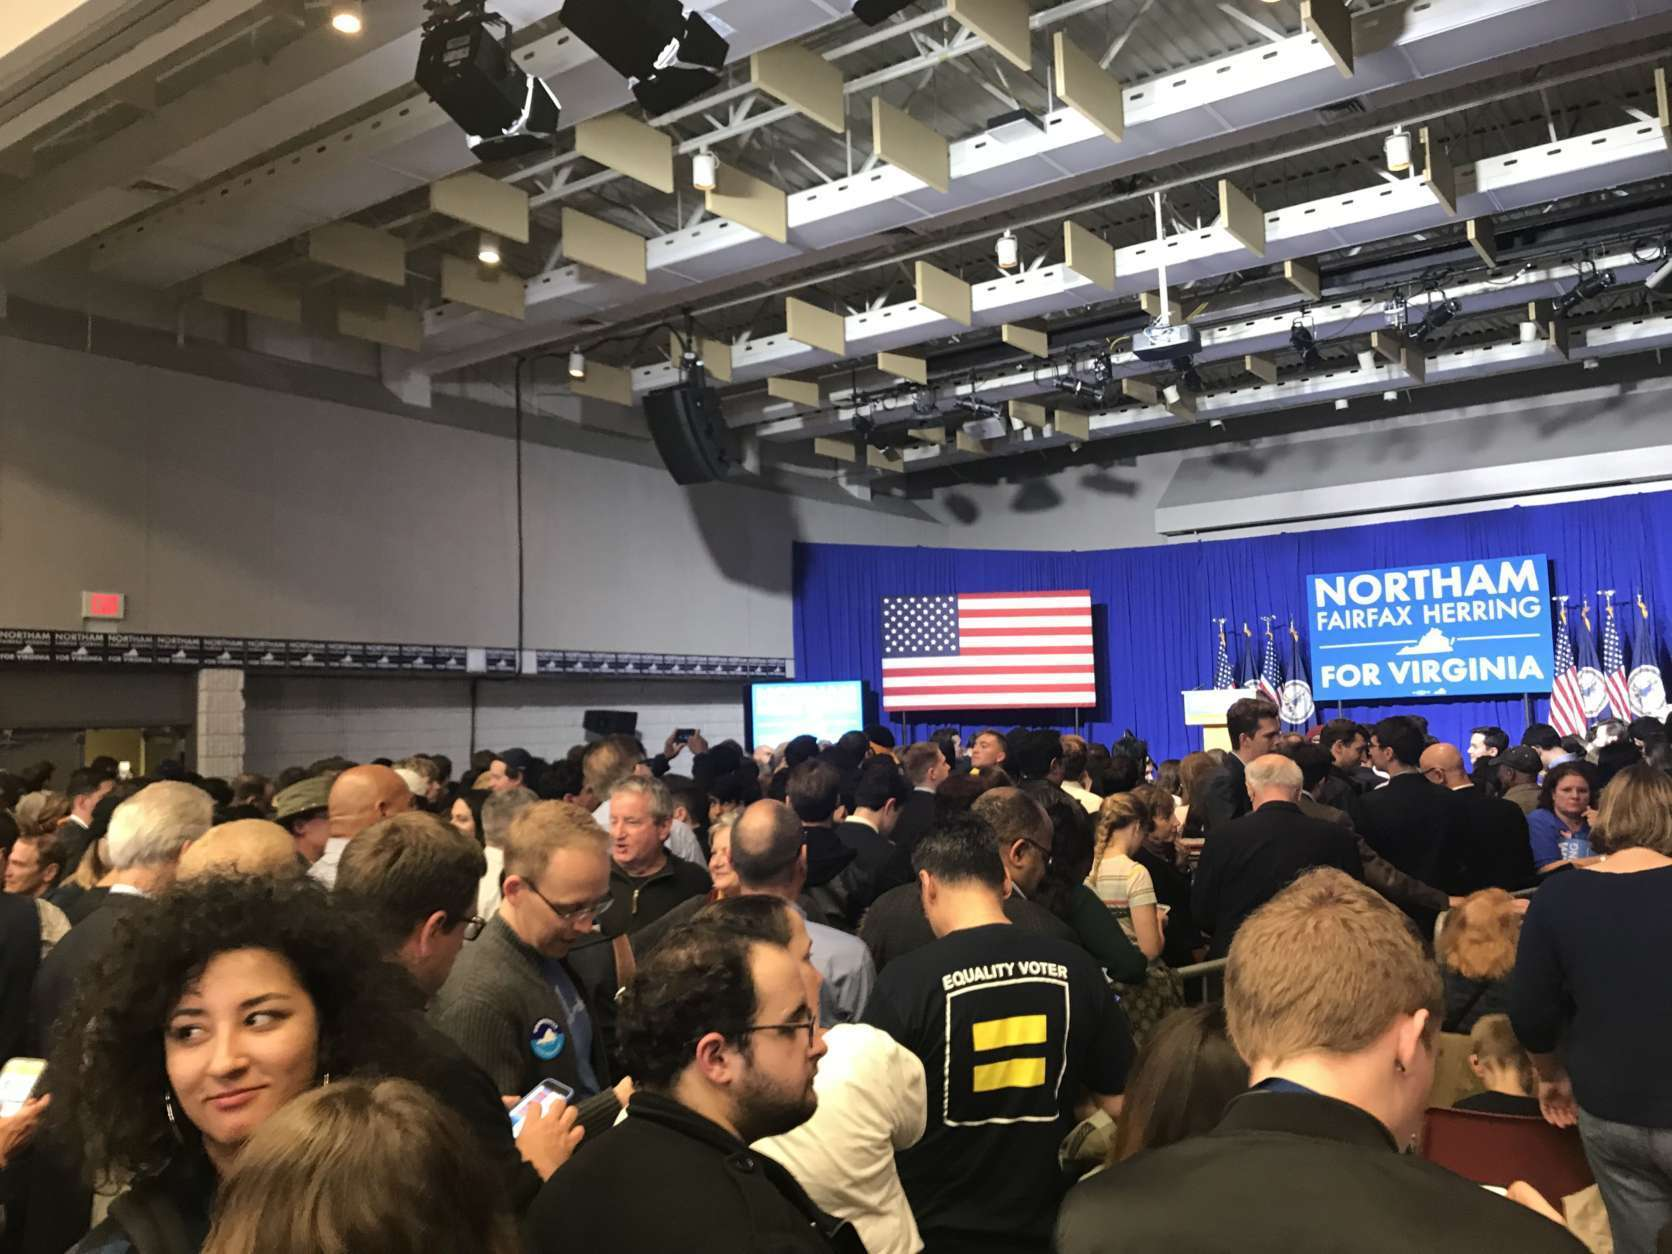 The scene at the Northam campaign in Fairfax, Virginia, before Ralph Northam is announced the winner of the Virginia governor's race. (WTOP/Dick Uliano)